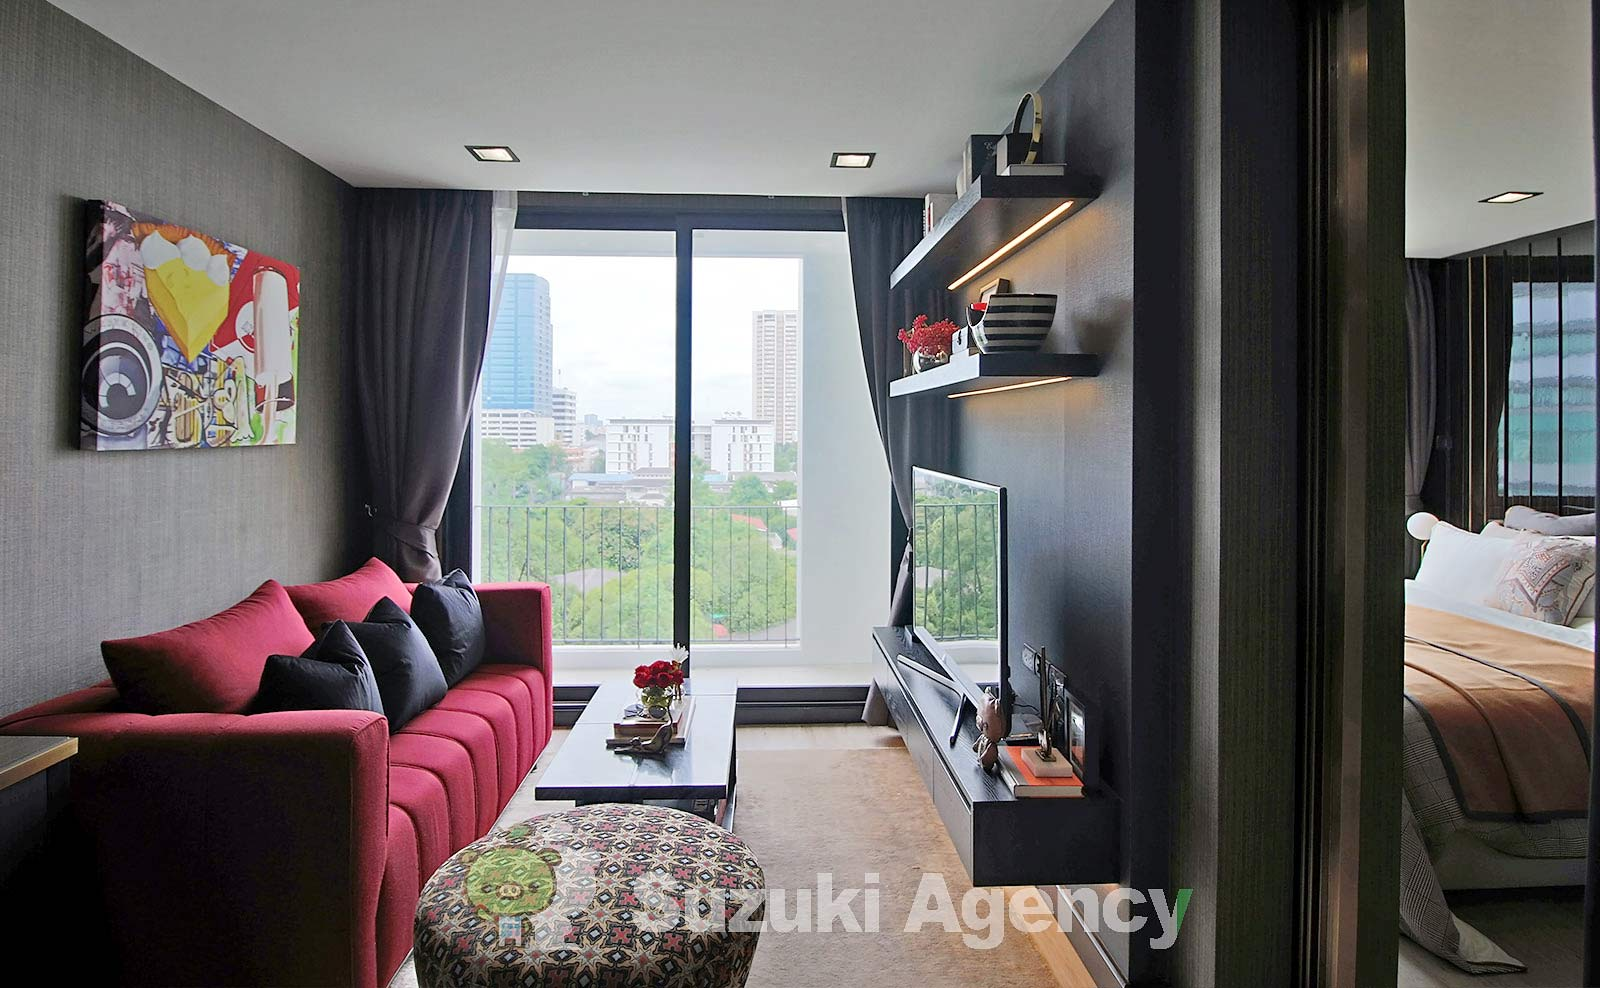 Silver Thonglor Apartment:1Bed Room Photos No.1